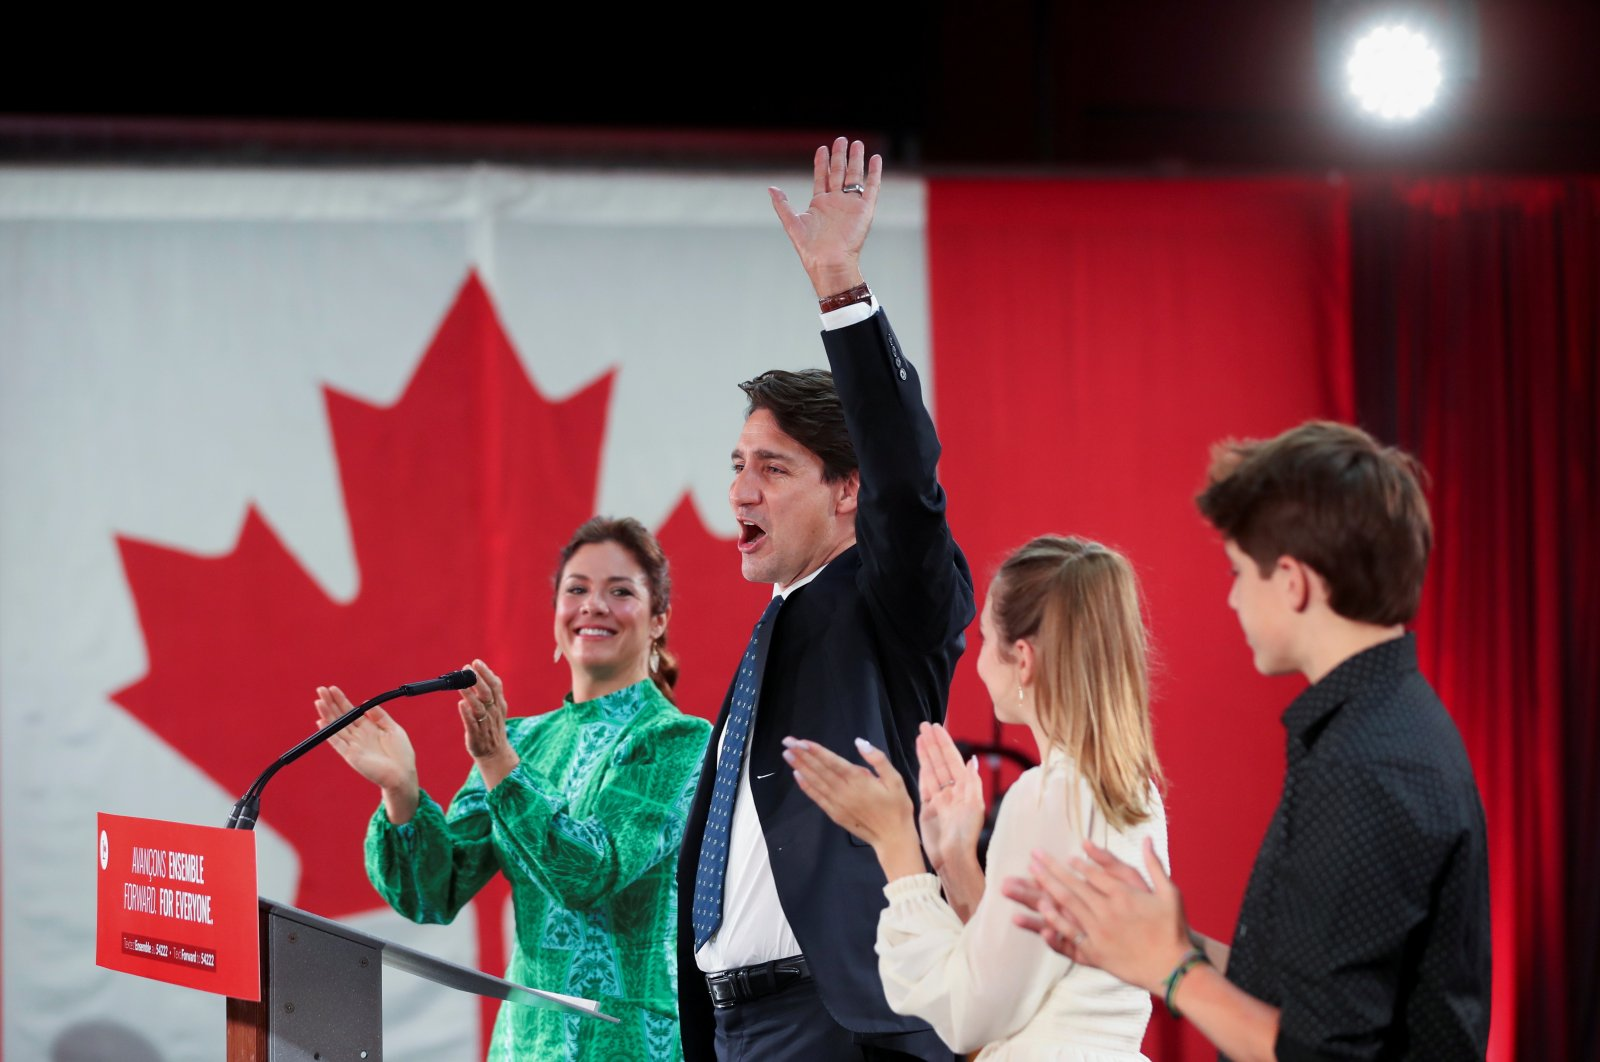 Canada's Liberal Prime Minister Justin Trudeau, accompanied by his wife Sophie Gregoire and their children Ella-Grace and Xavier waves to supporters during the Liberal election night party in Montreal, Quebec, Canada, Sept. 21, 2021. (REUTERS)